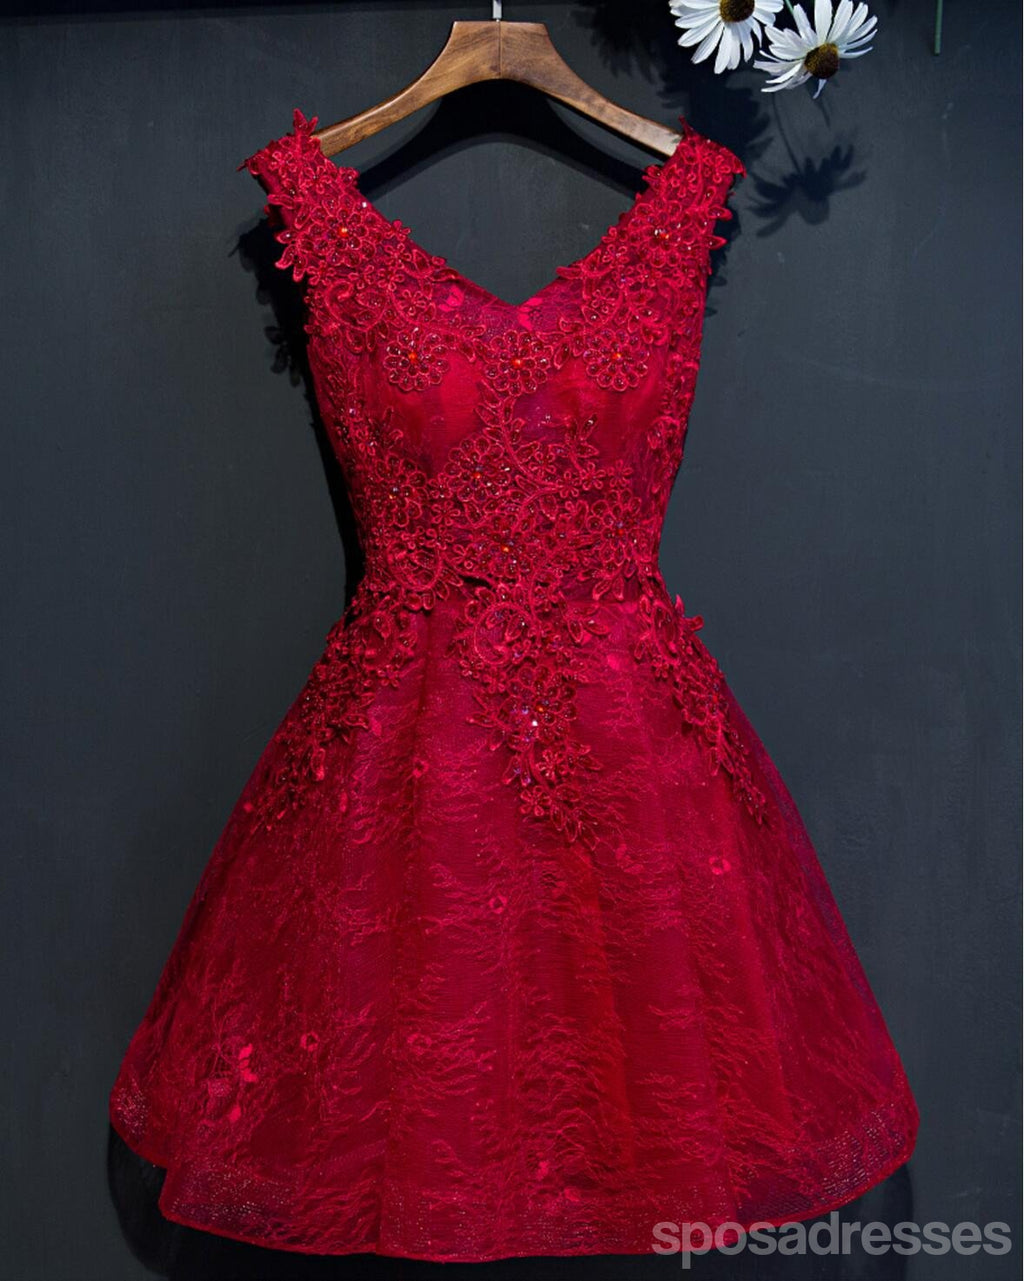 Two Straps Red Lace Heavily Beaded Homecoming Prom Dresses, Affordable Short Party Prom Dresses, Perfect Homecoming Dresses, CM265